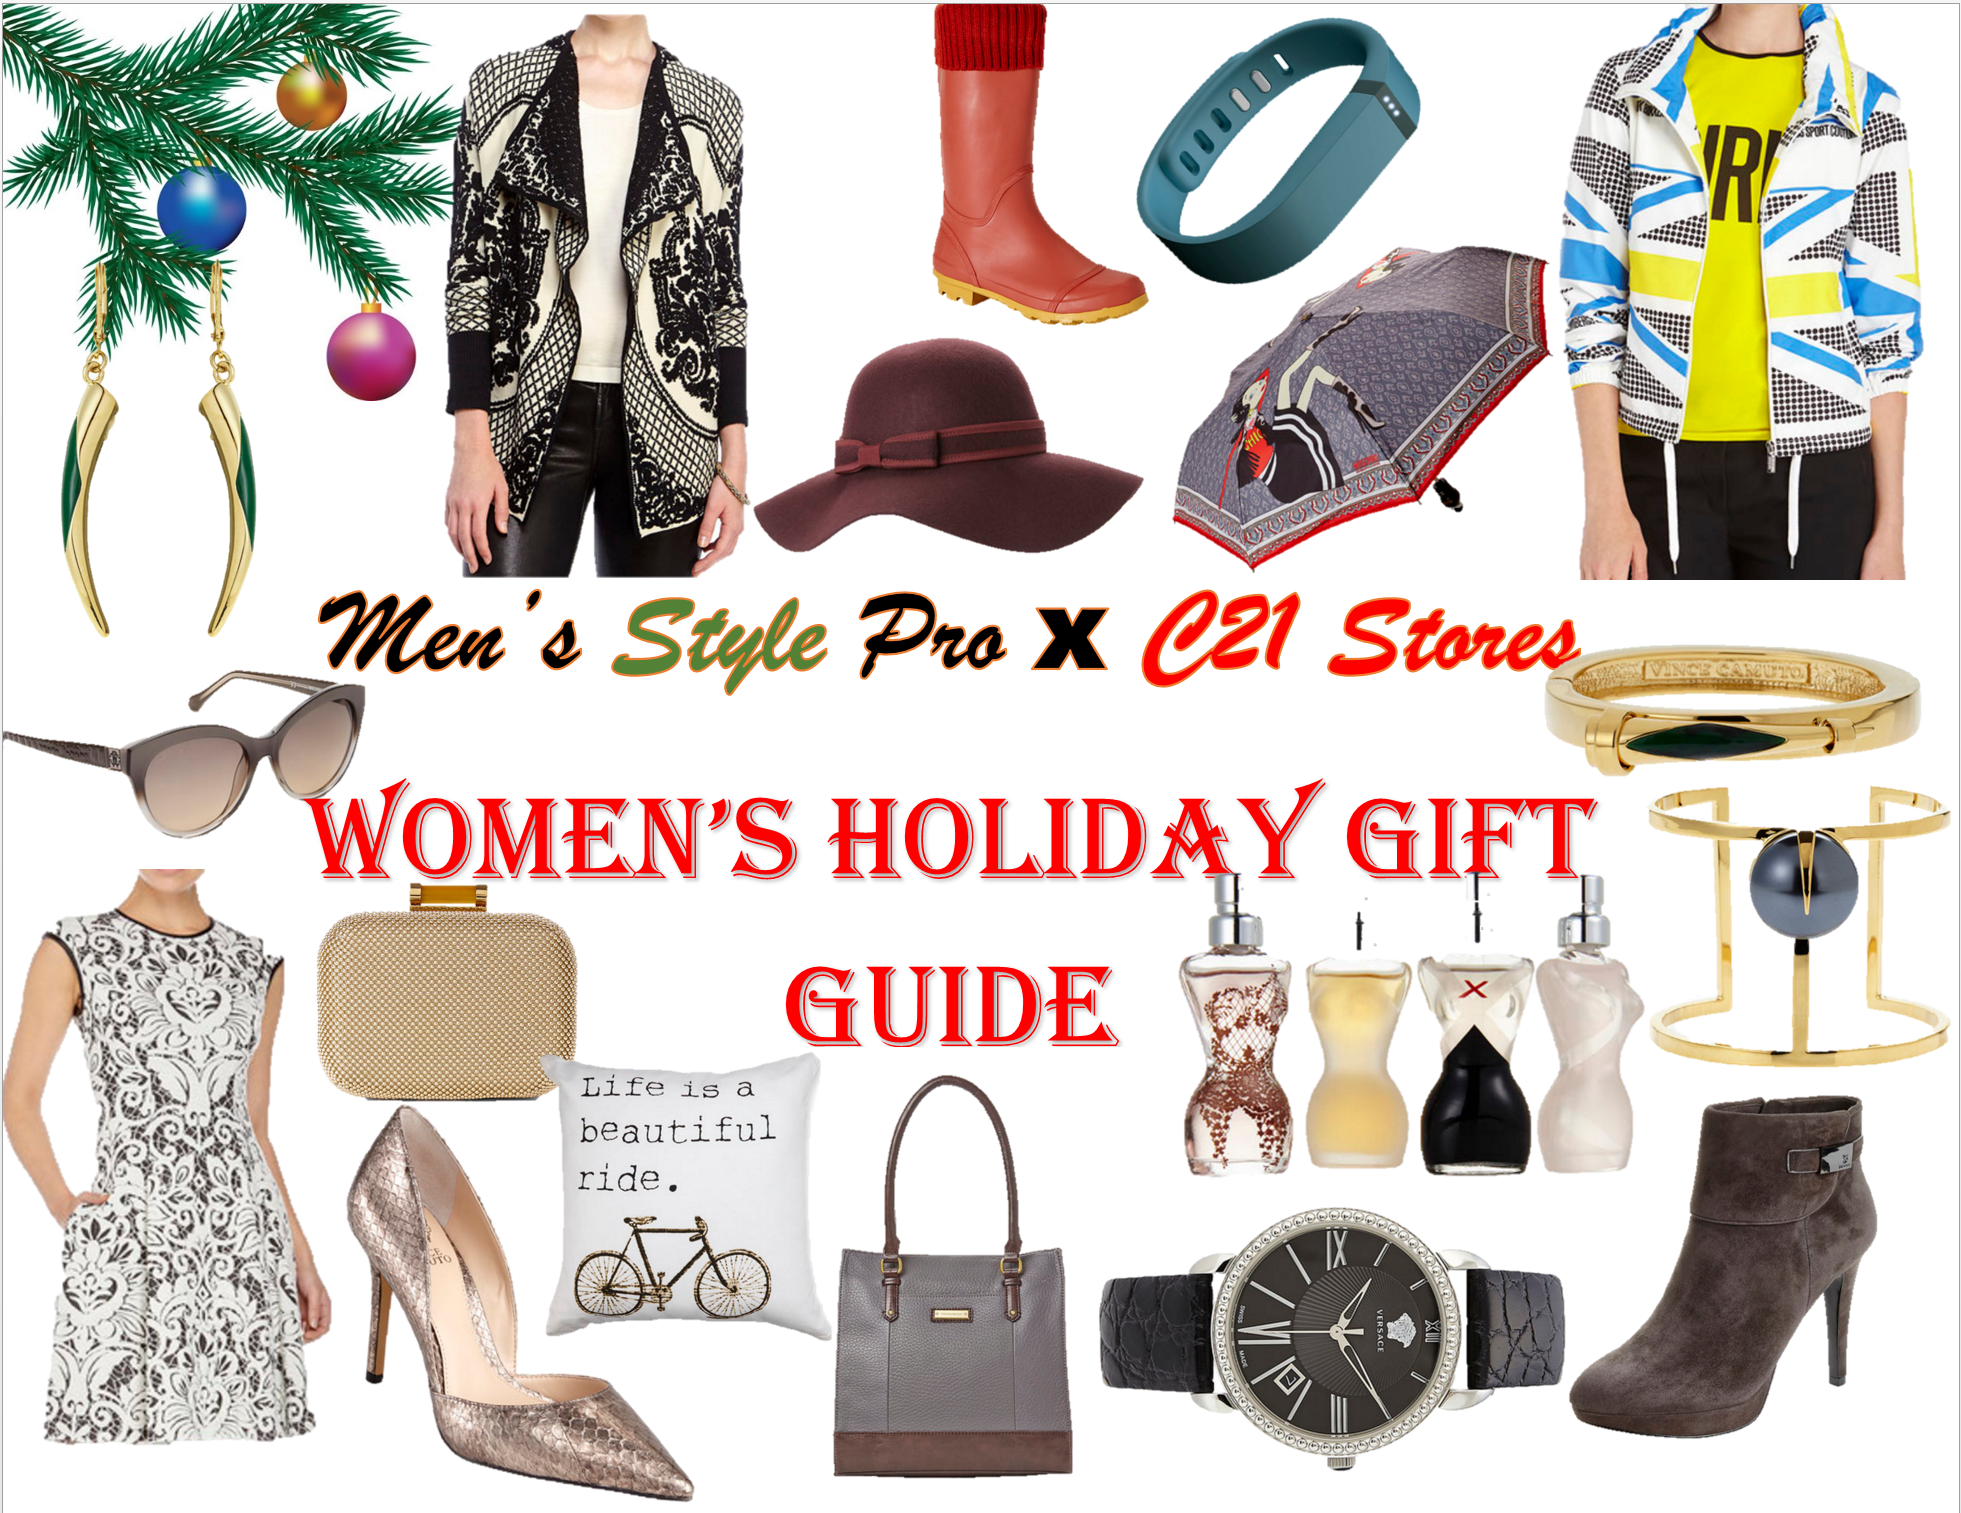 MSP x C21 Stores Women's Holiday Gift Guide